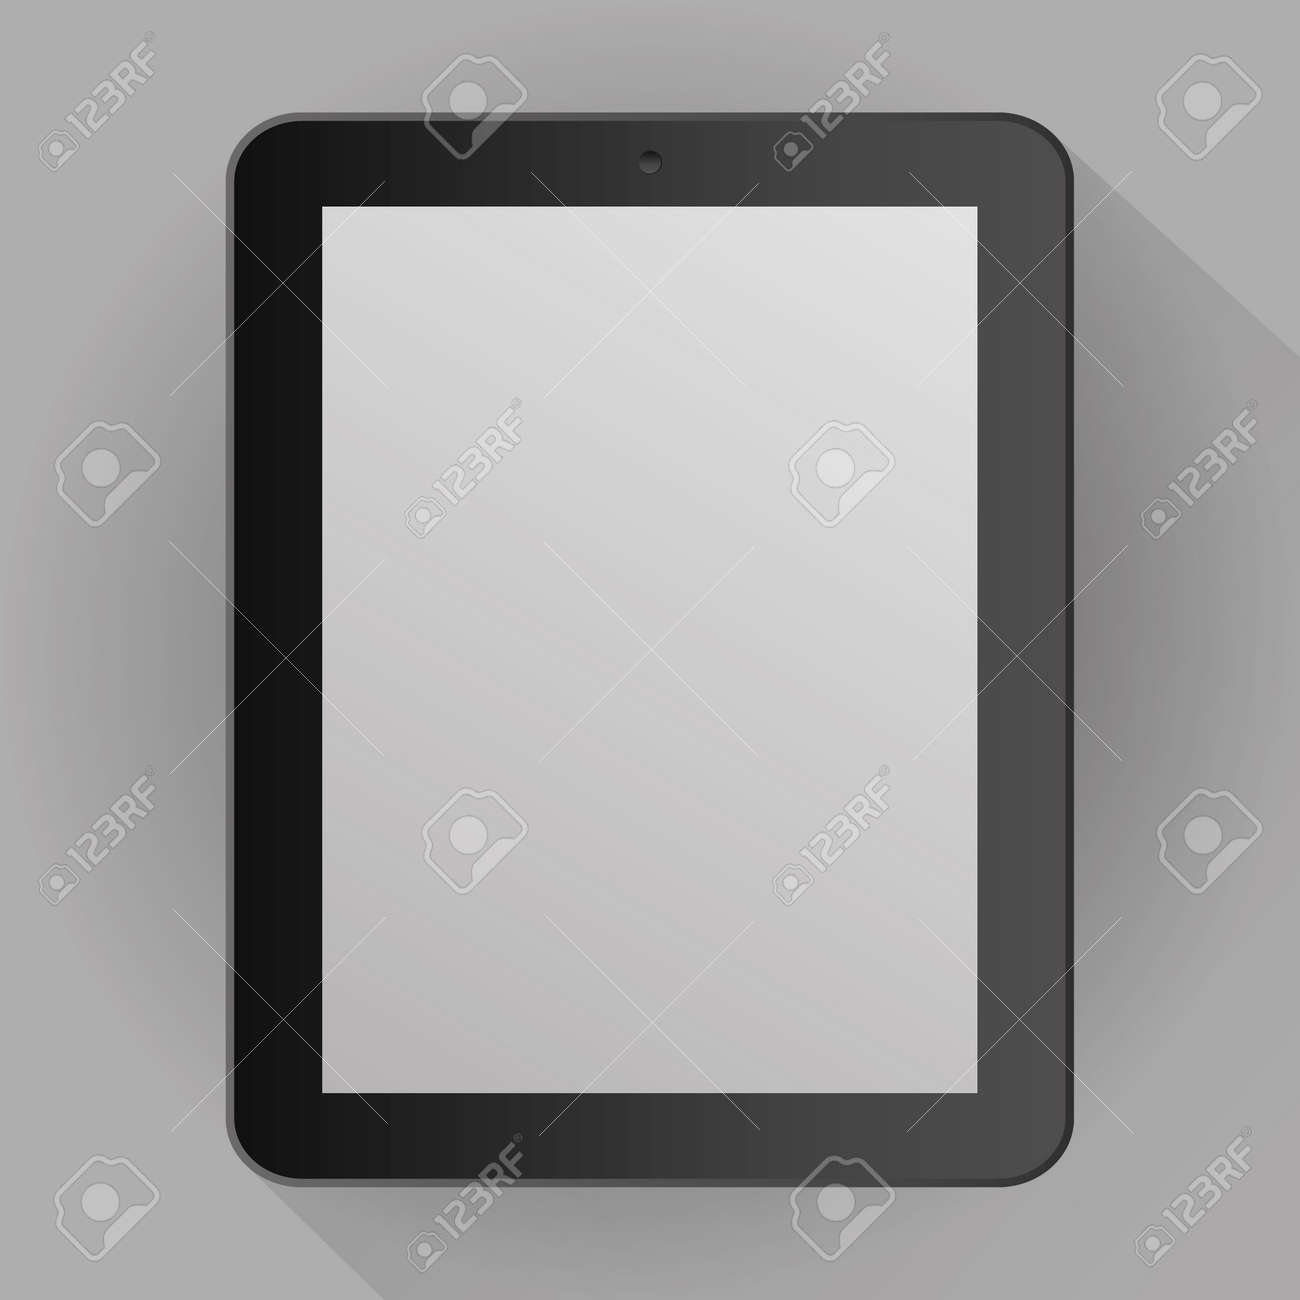 Realistic gray tablet isolated on gray background with shadow. vector illustration - 126811583